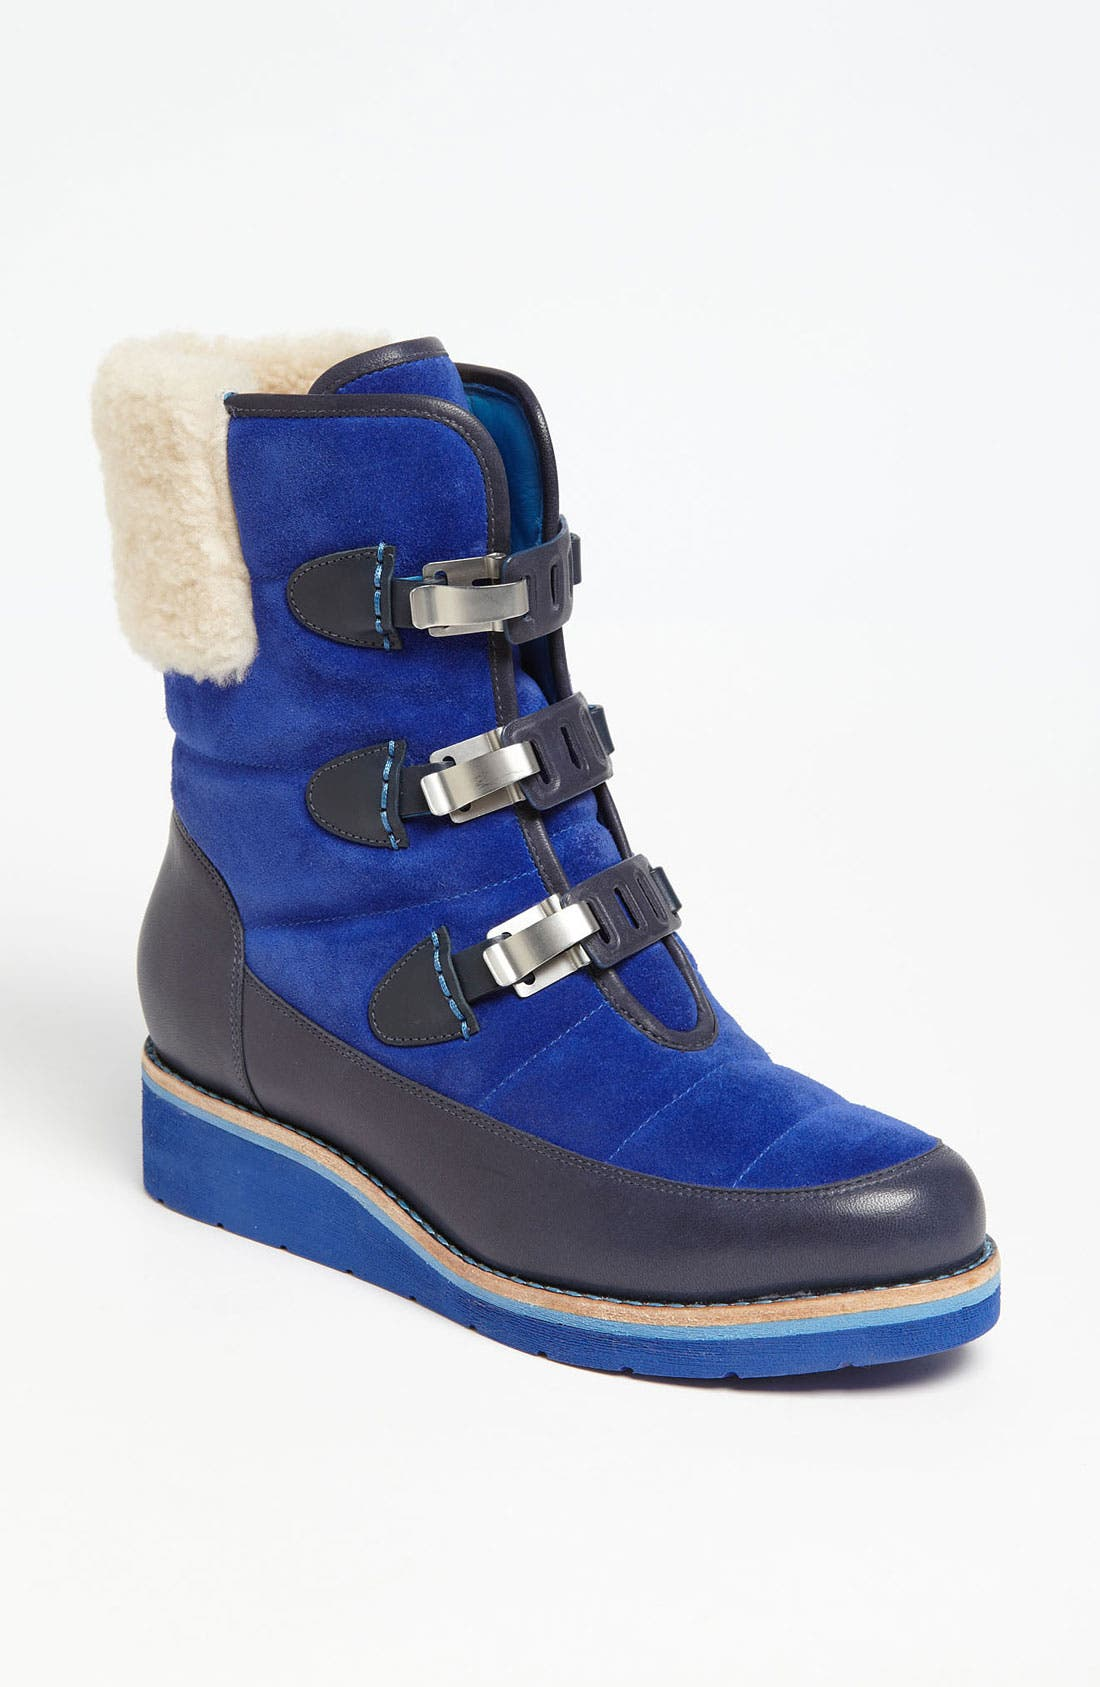 Alternate Image 1 Selected - Cole Haan 'Lania' Boot